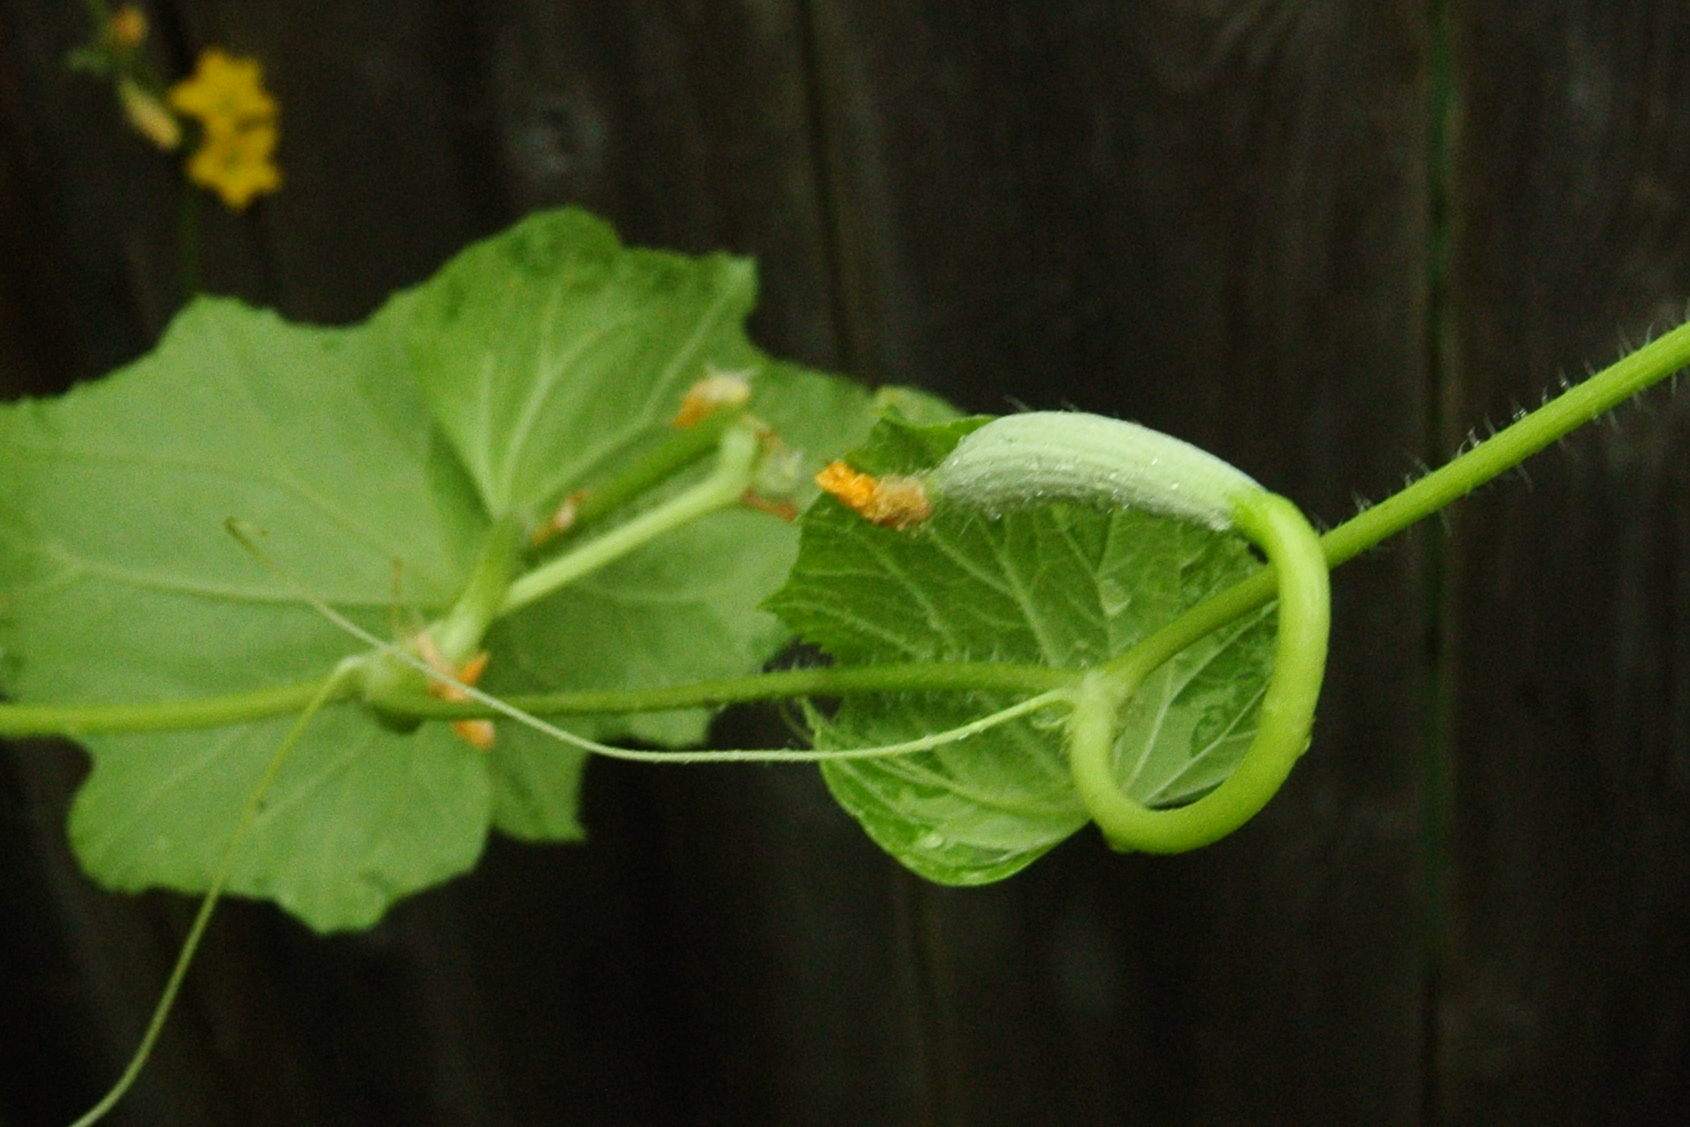 An Armenian Cuke developing.